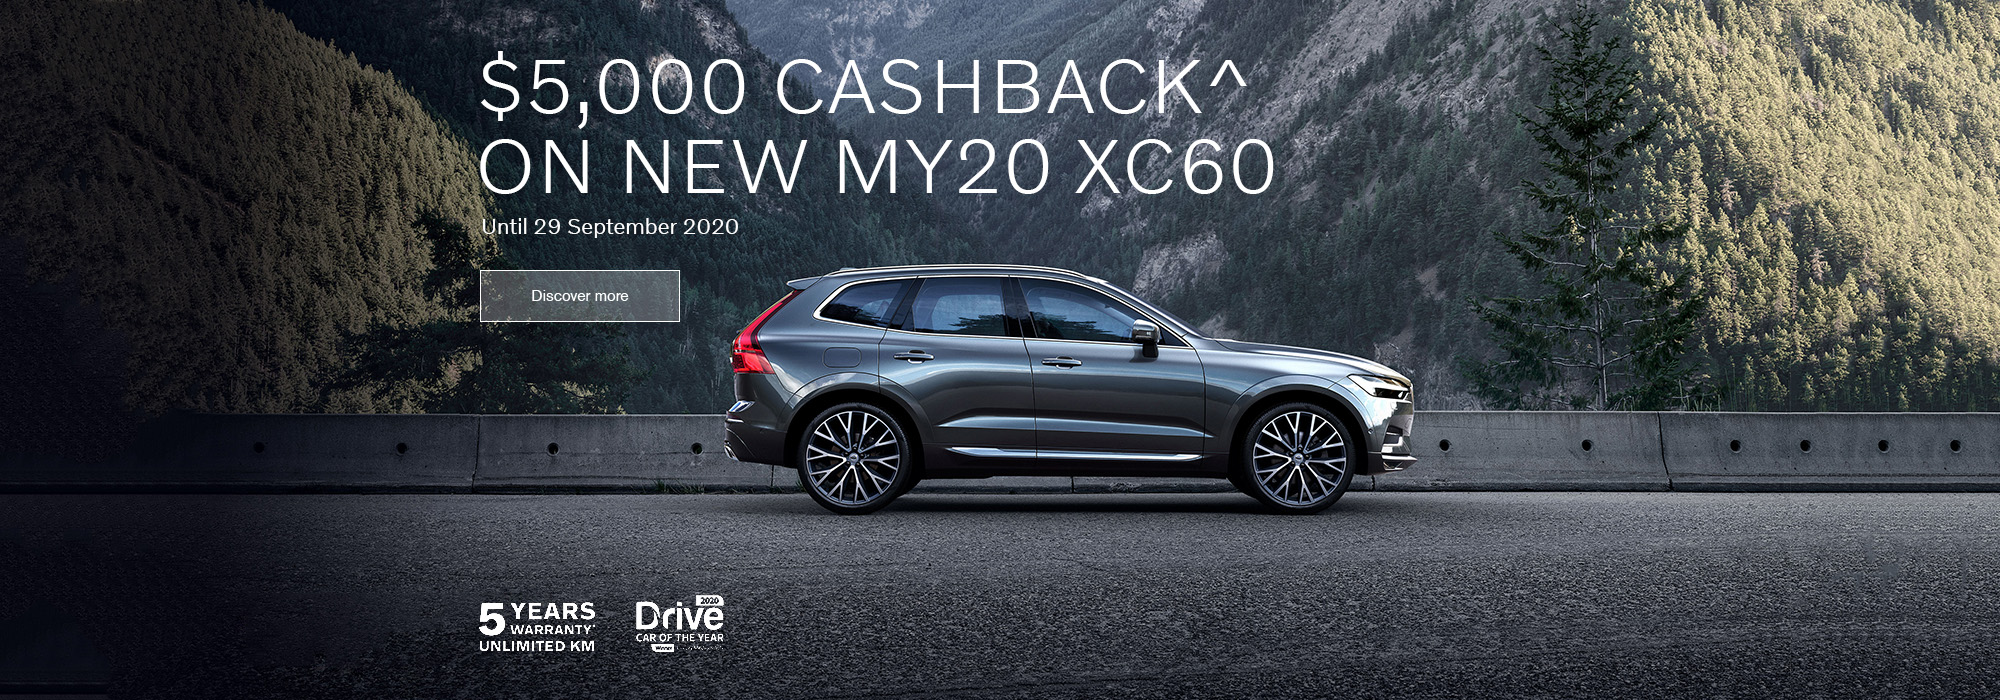 $5000 Cashback on new MY20 XC60